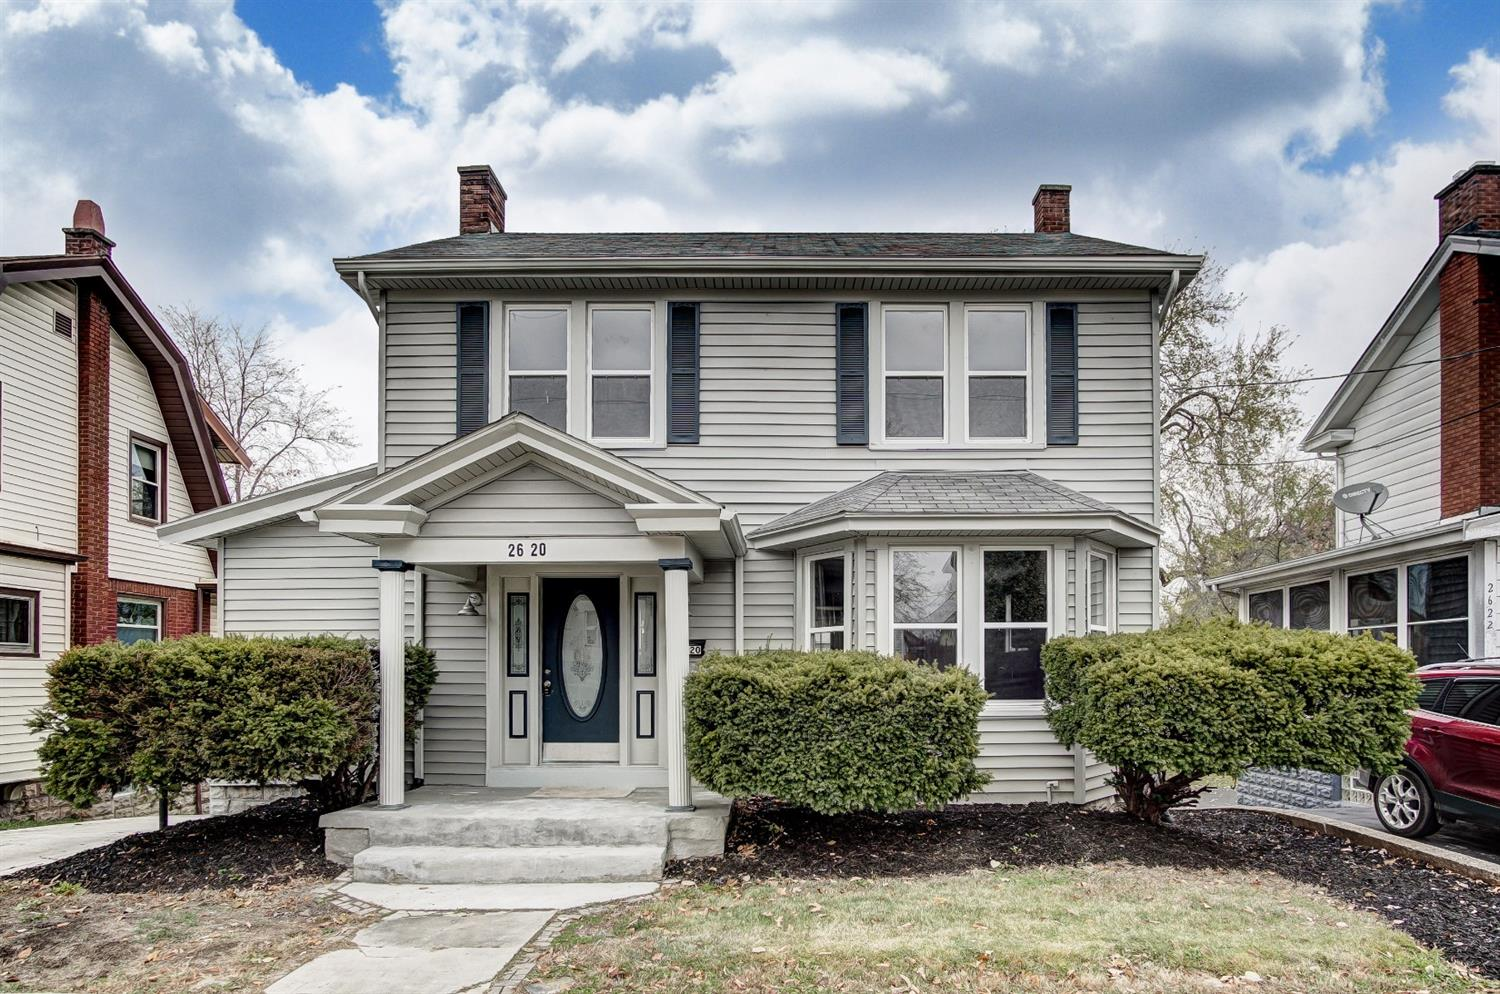 2620 Leslie Ave Norwood, OH